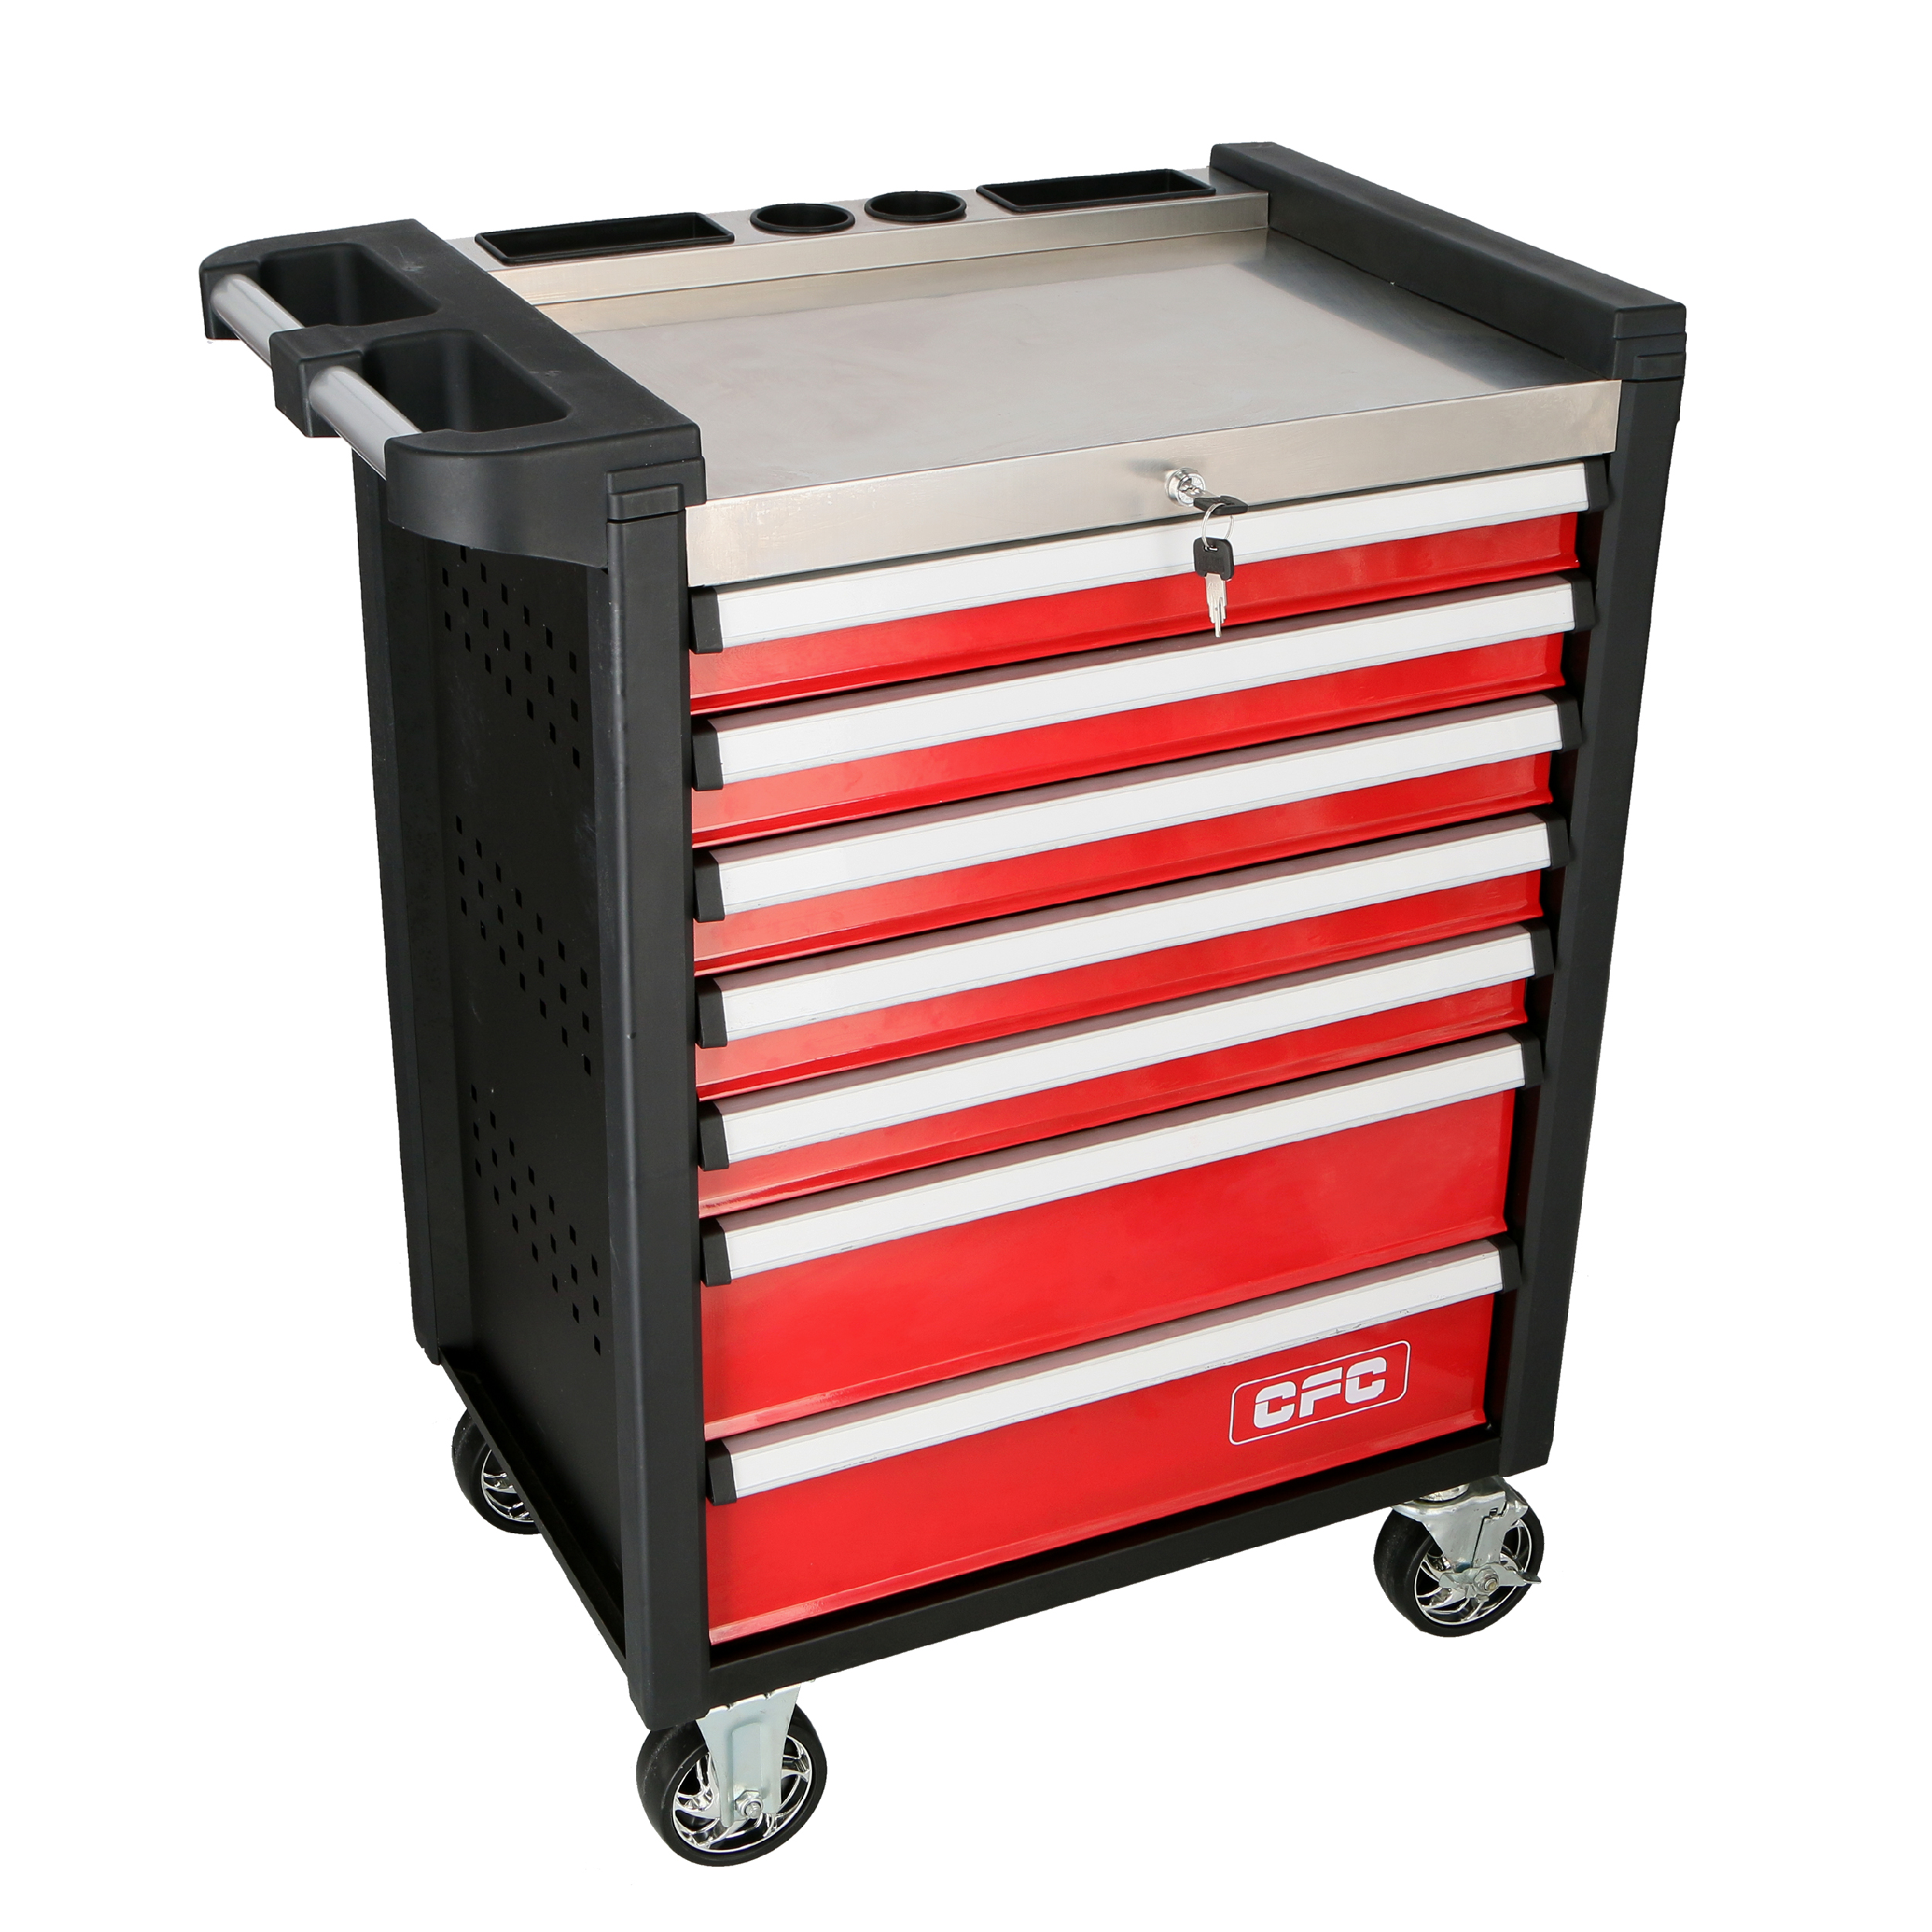 ROLLER CABINET, 7 DRAWERS, STAINLESS STEEL TOP